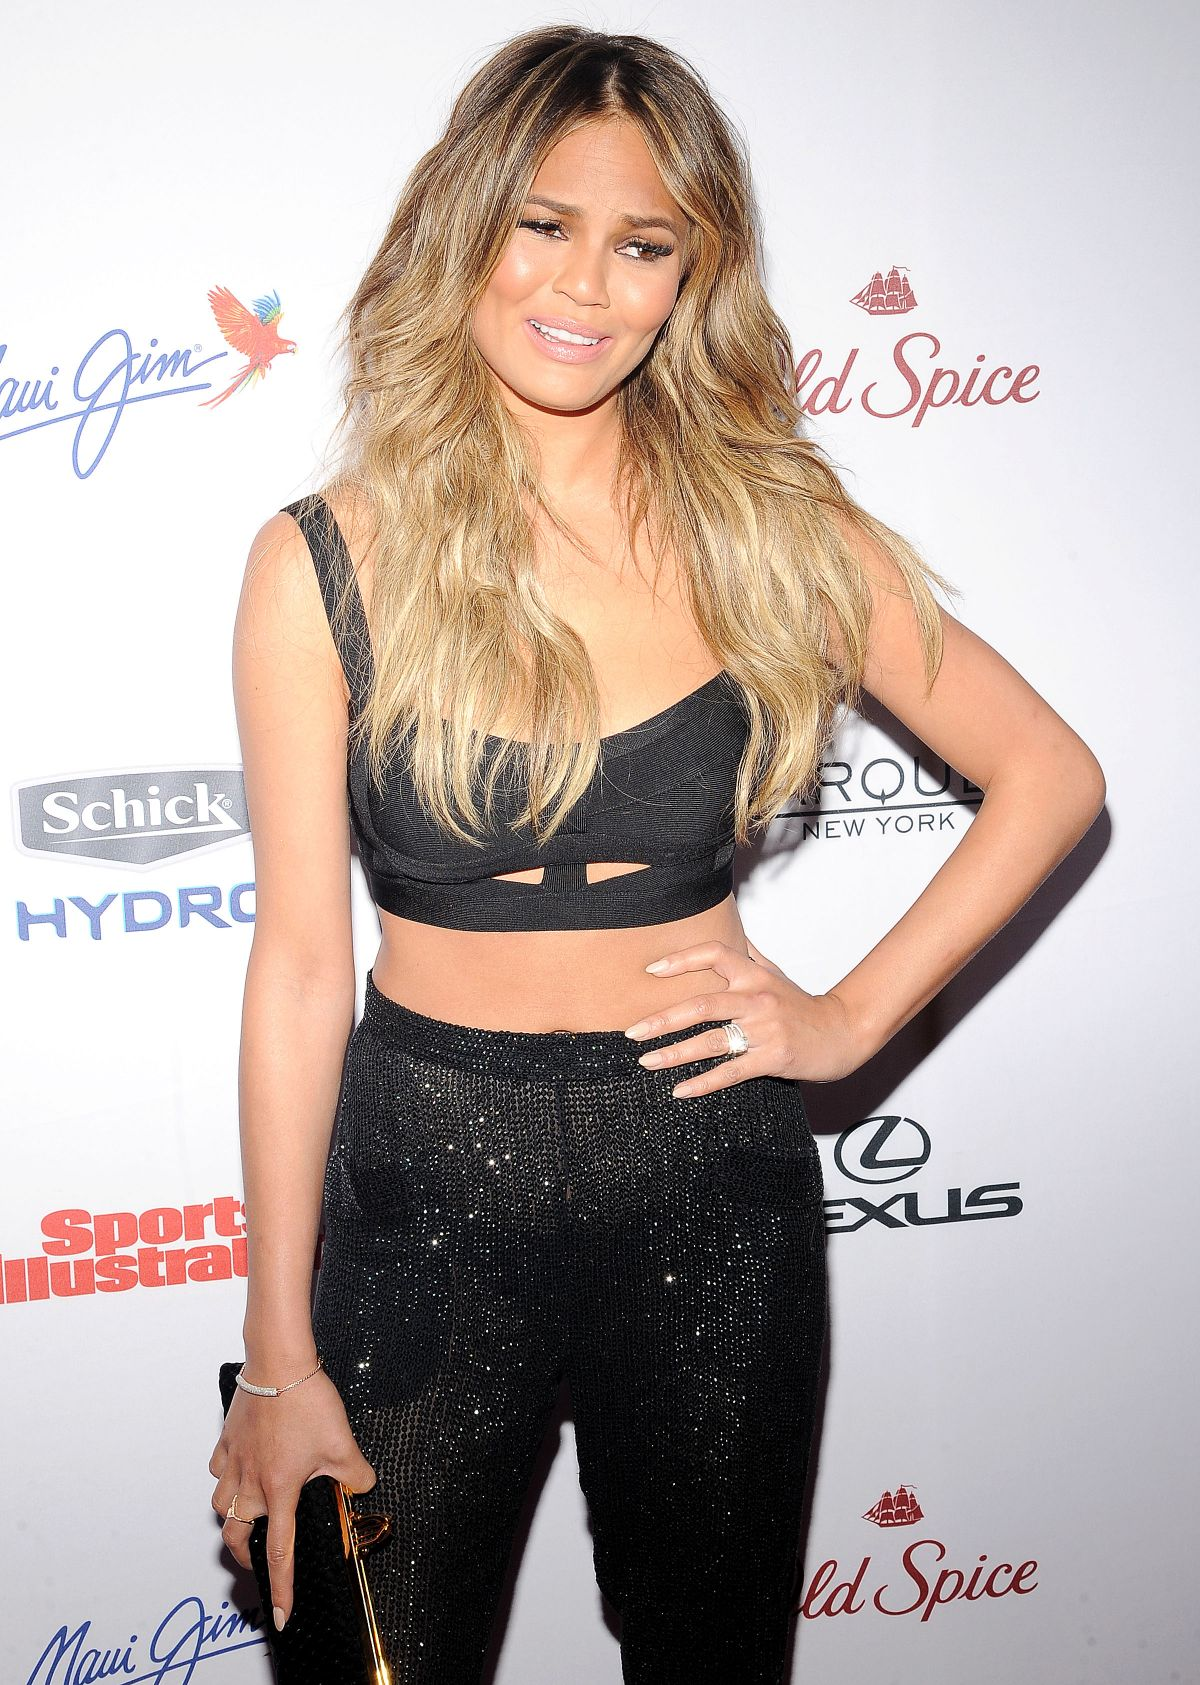 CHRISSY TEIGEN at 2015 Sports Illustrated Swimsuit Issue Celebration in New York